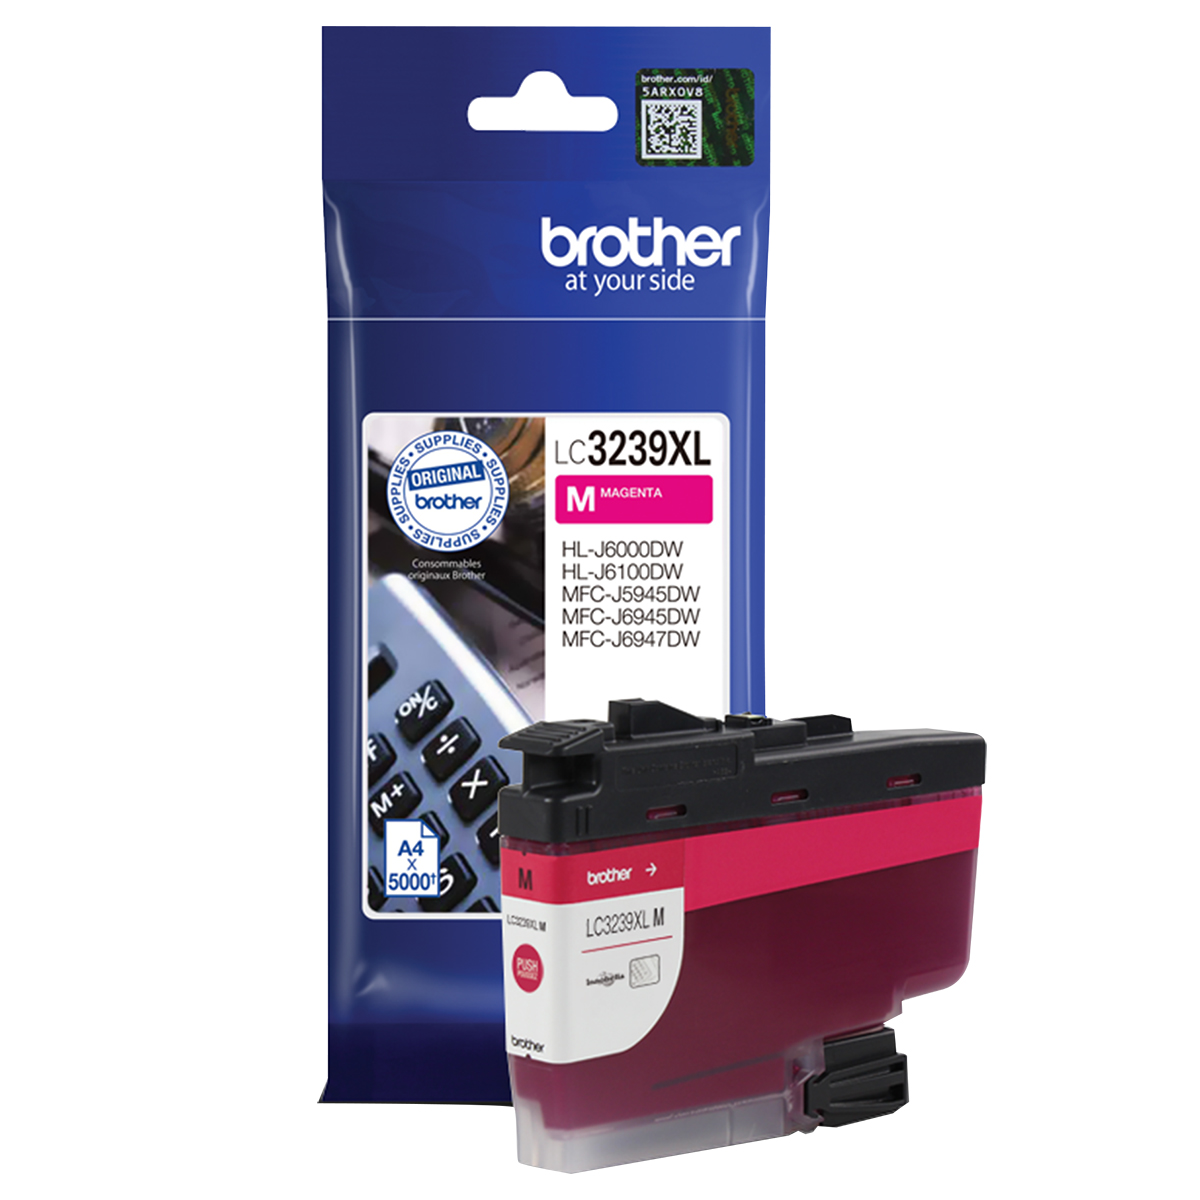 Brother LC3239XLM Magenta Inkjet Cartridge